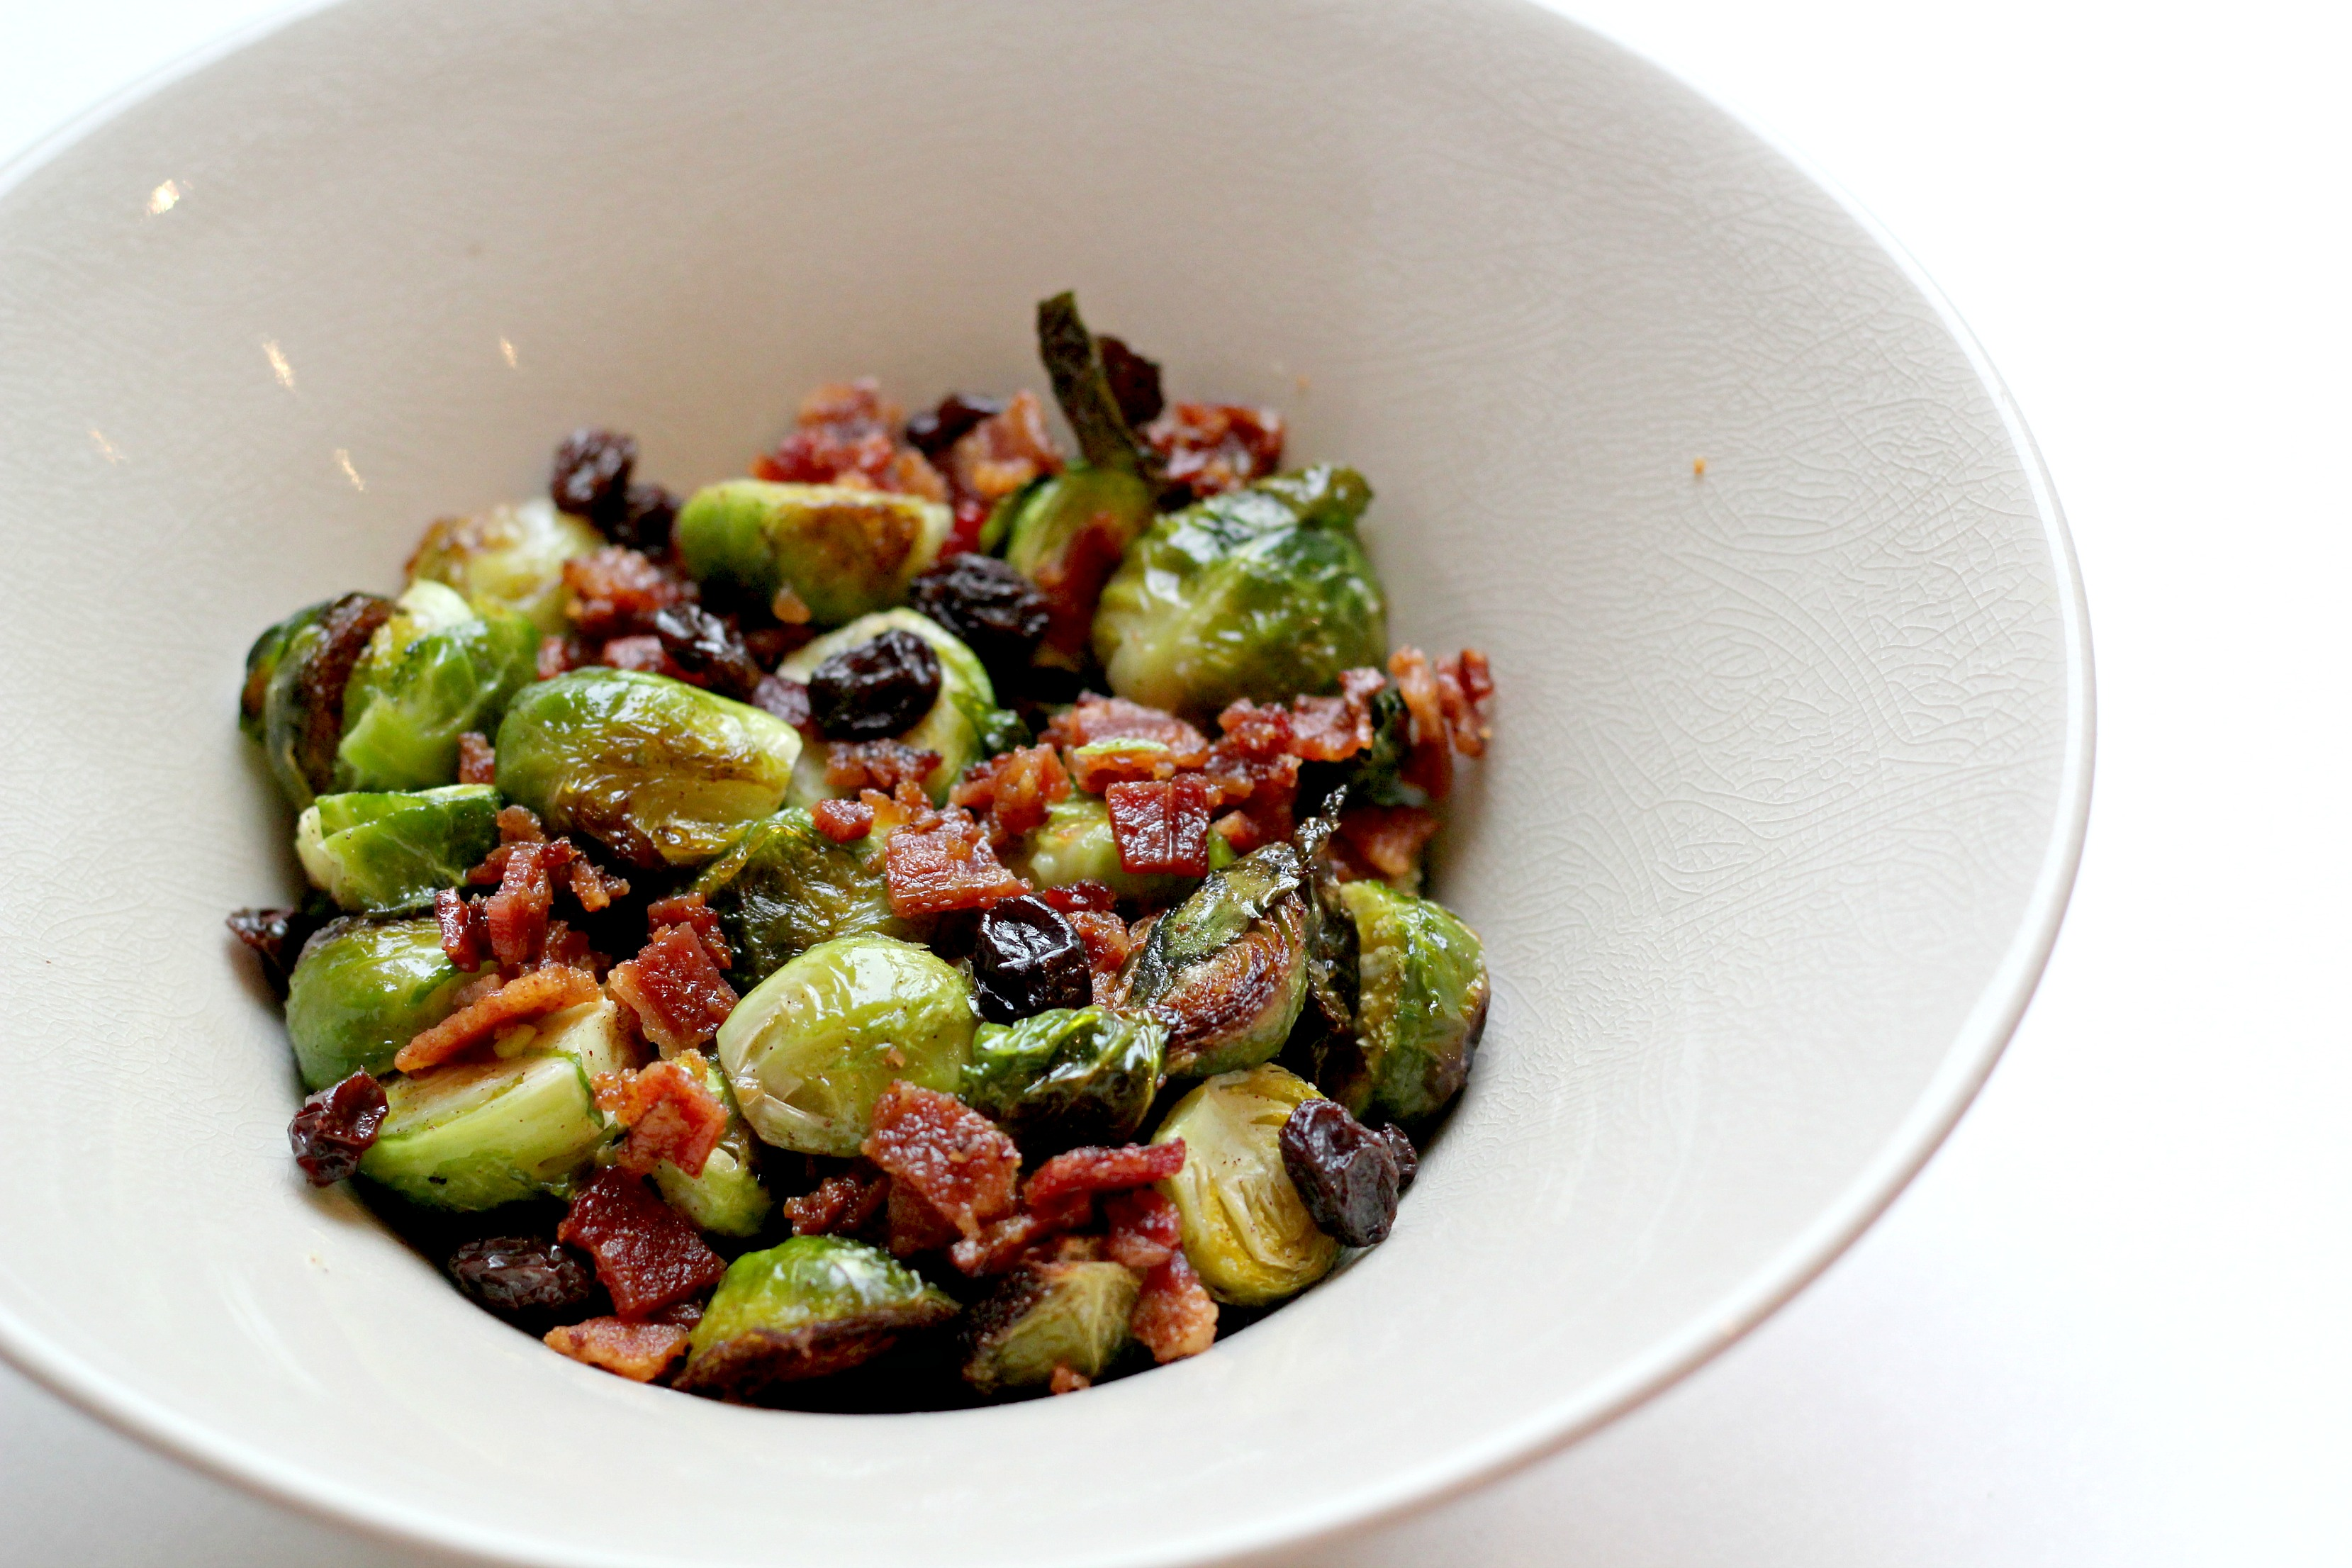 Brussel Sprouts with Bacon and Cinnamon is the perfect side dish and only takes a few simple steps to make.